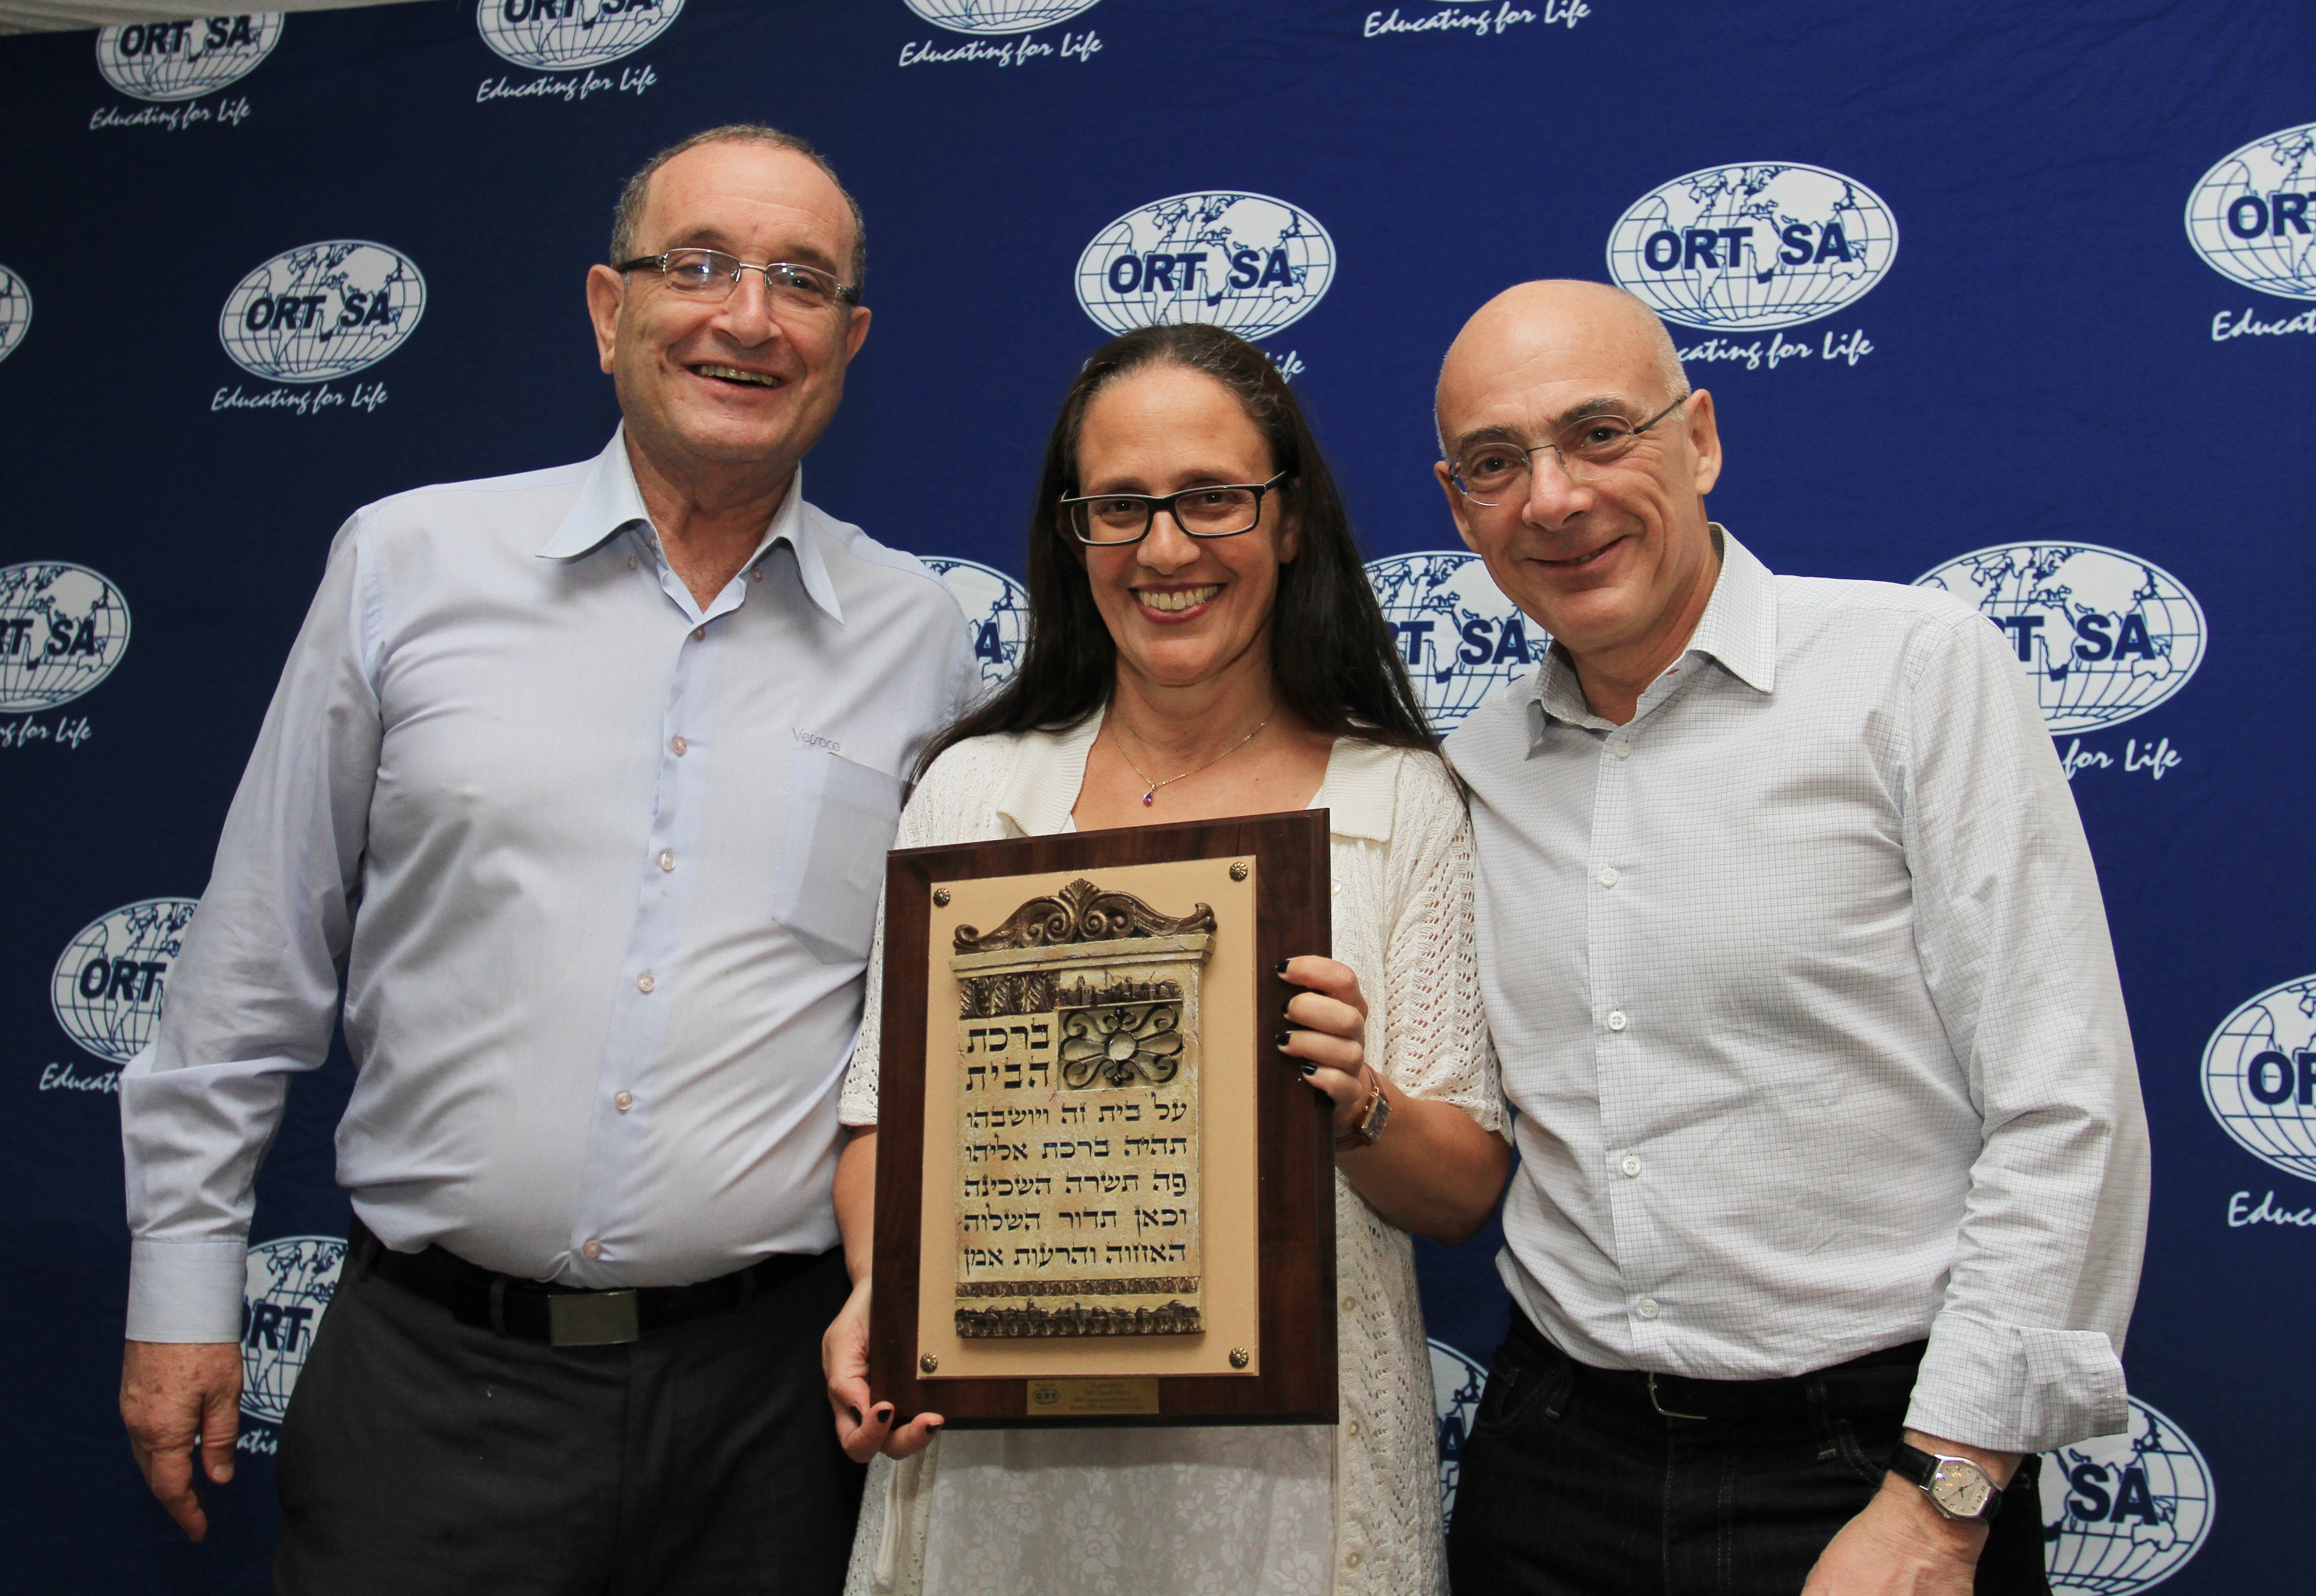 Ariellah Rosenberg, ORT SA CEO being presented an award by Shmuel Sisso, Director General & CEO World ORT with Dr Jean De Gunzburg, Chairman of the Board of Trustees